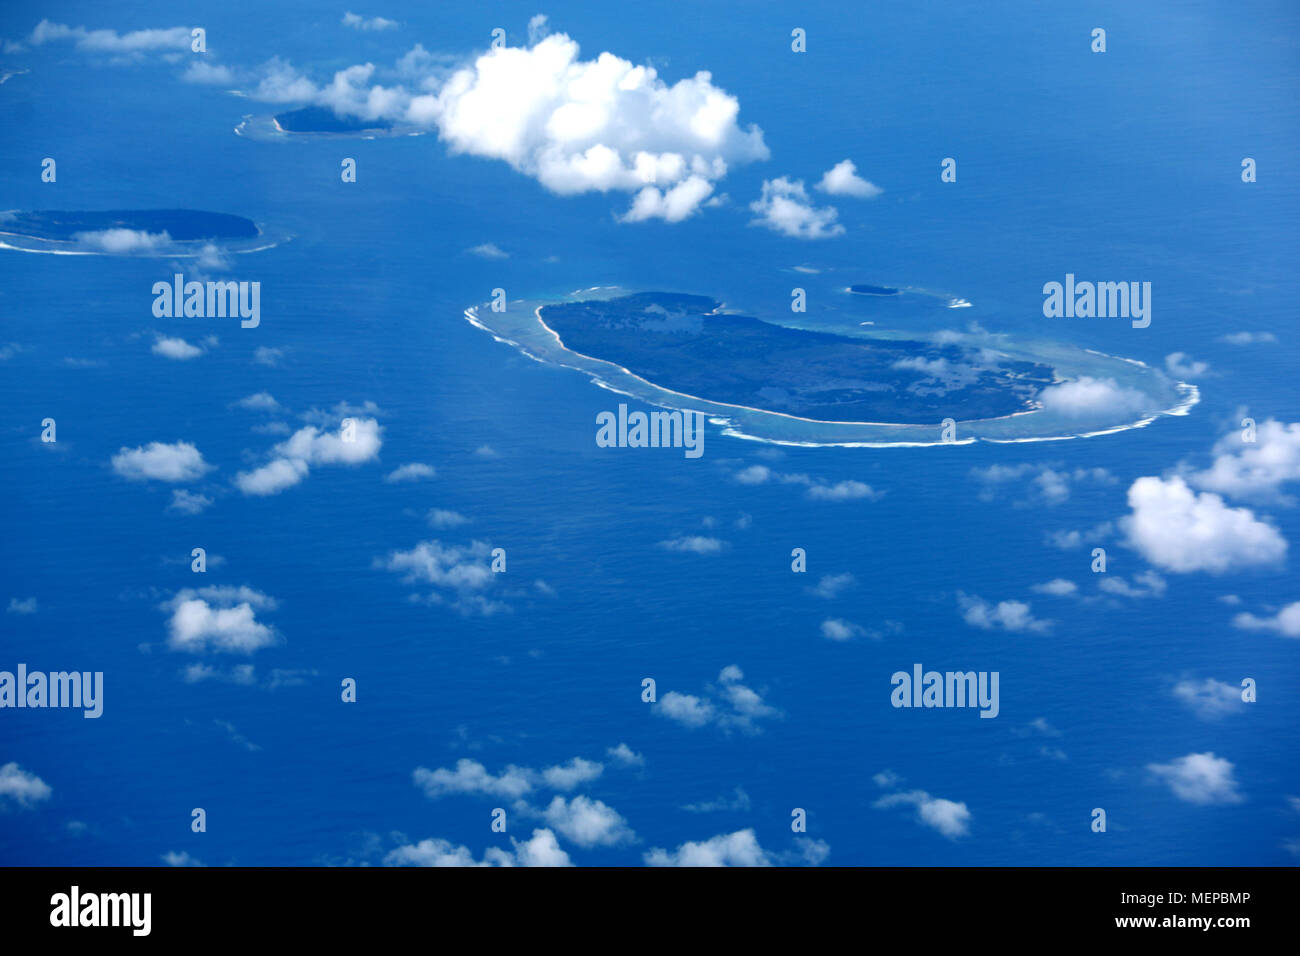 Overflying an Indonesian Archipelago in the Java Sea near Borneo - Stock Image